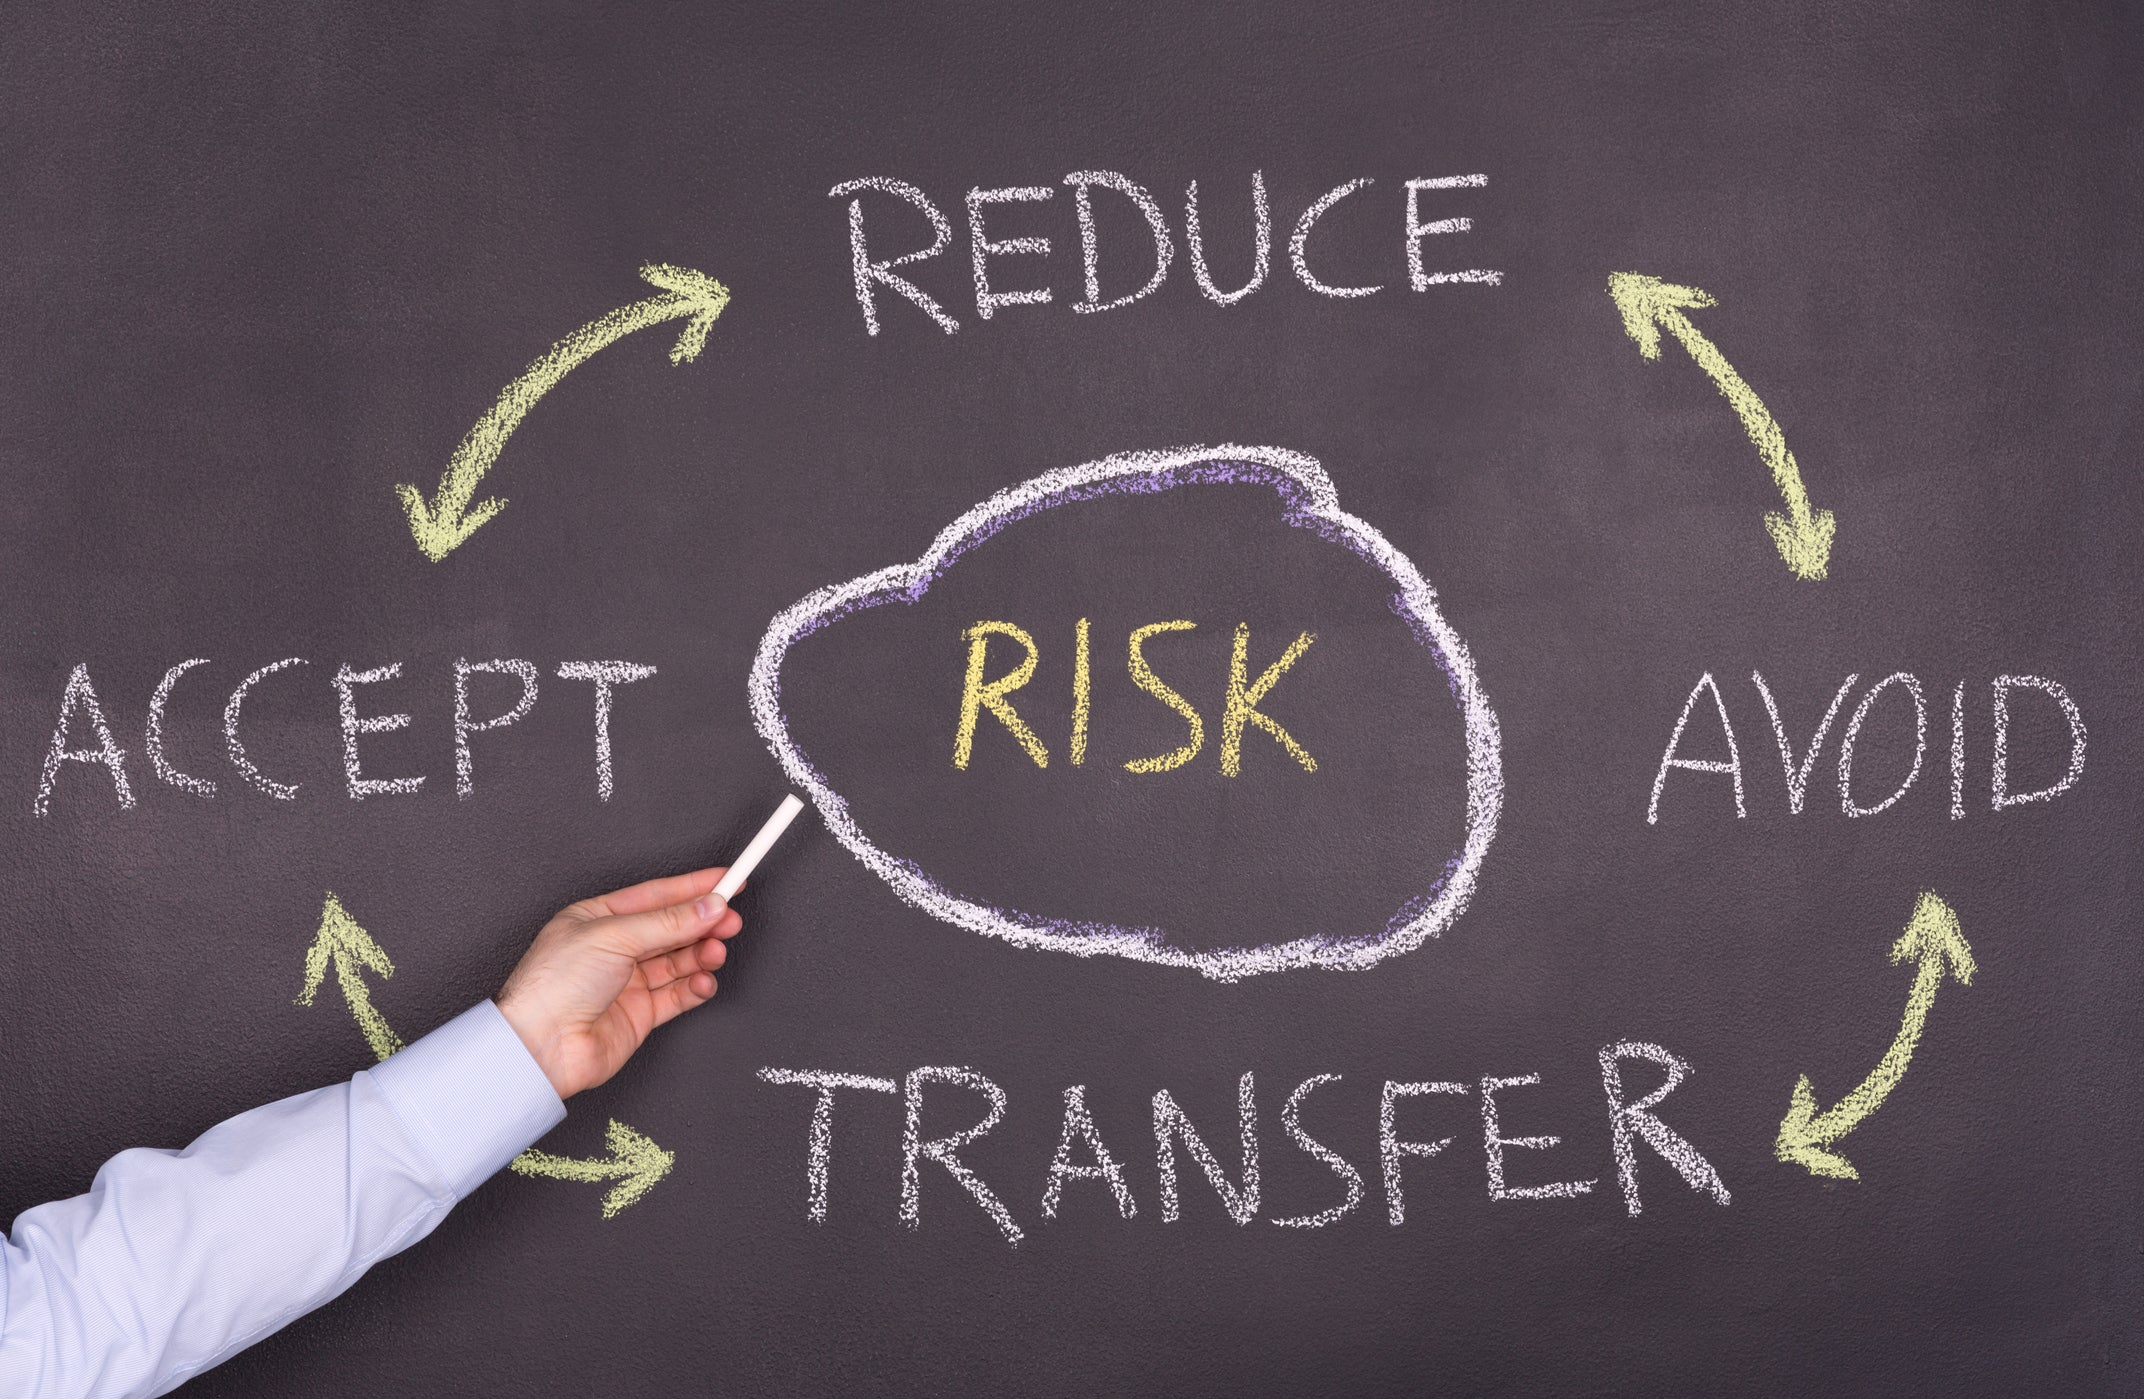 3 Real Risks of Investing (and What to Do About Them)